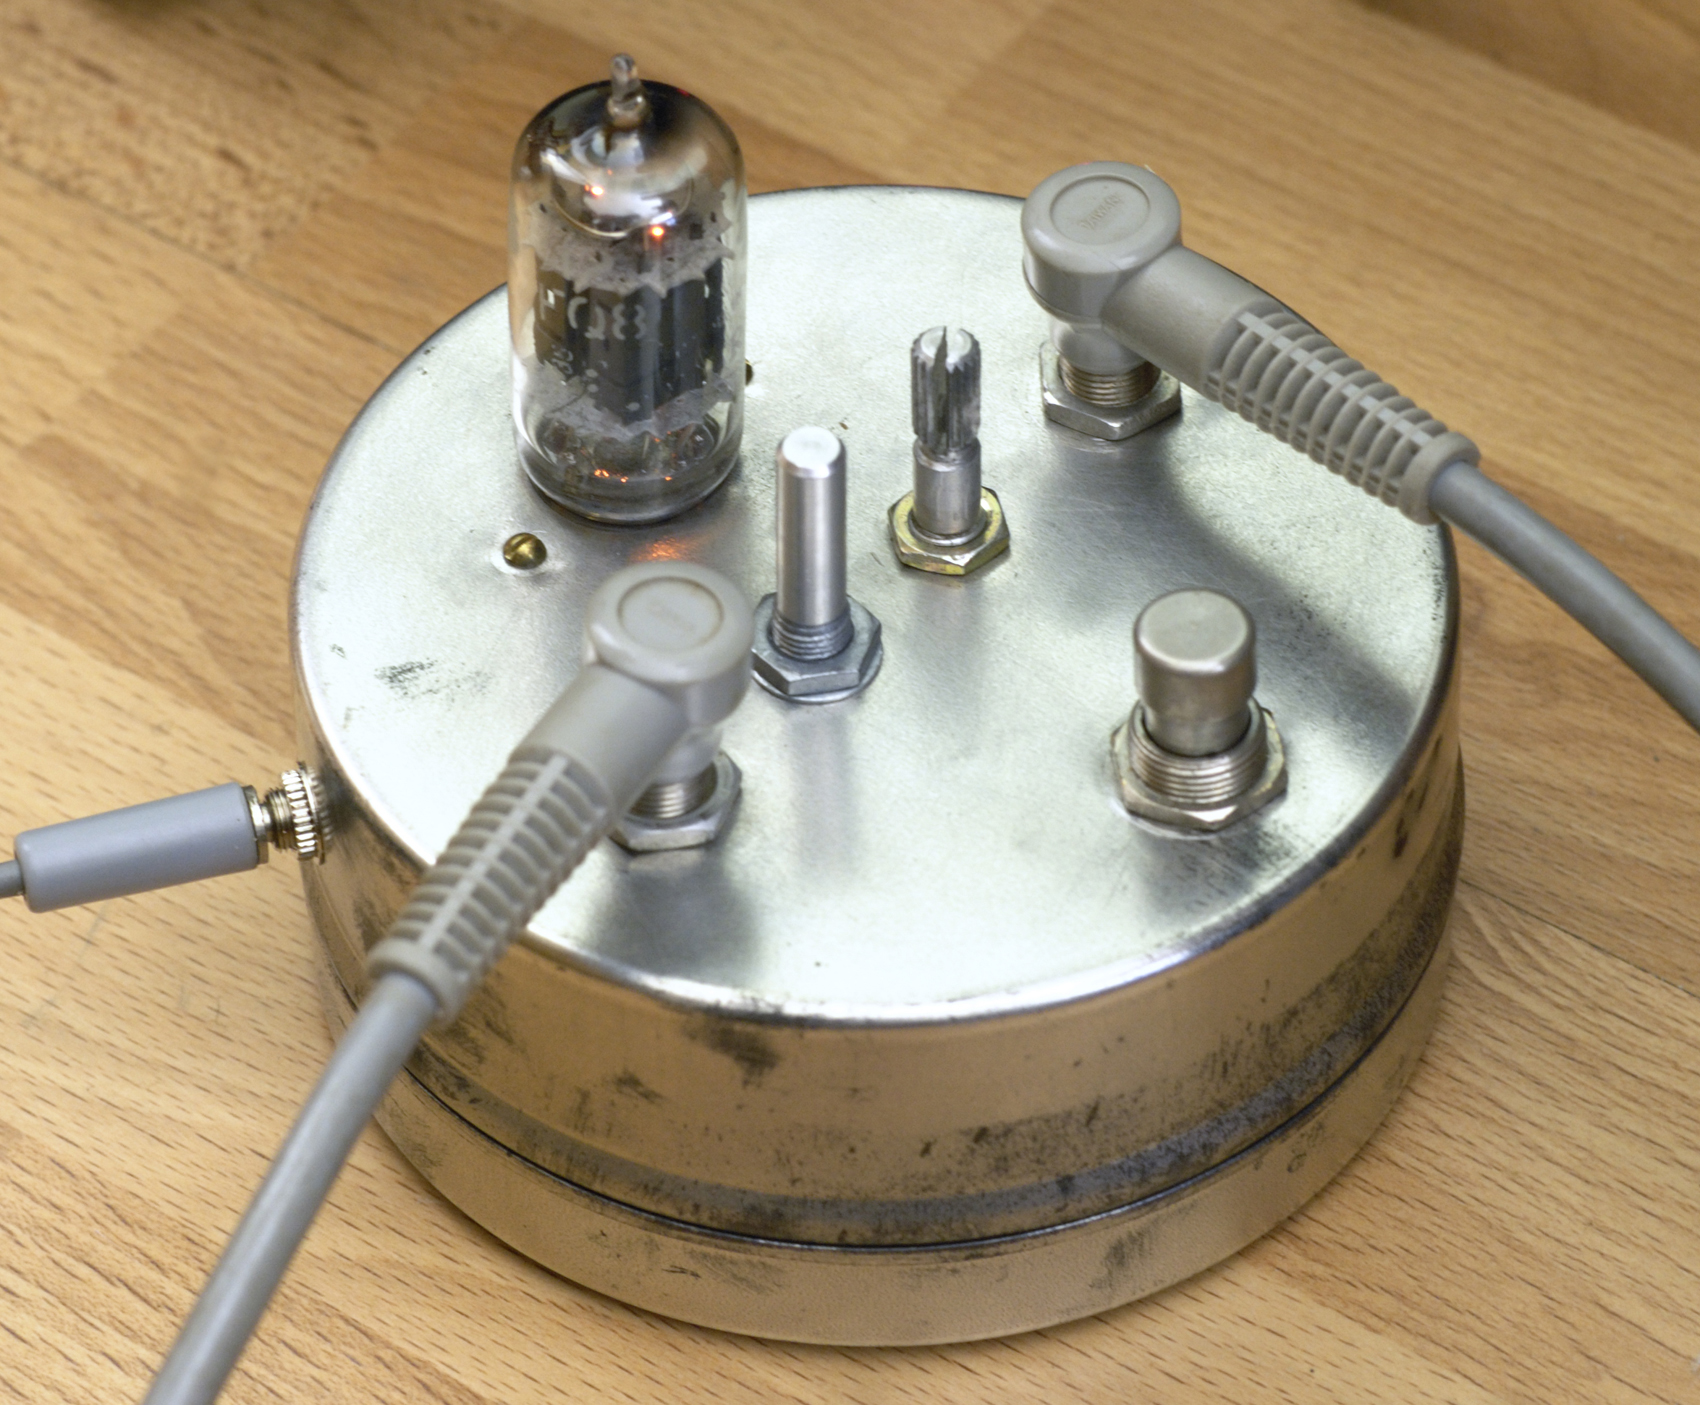 The ValveLiTzer: Low-voltage Tube Booster